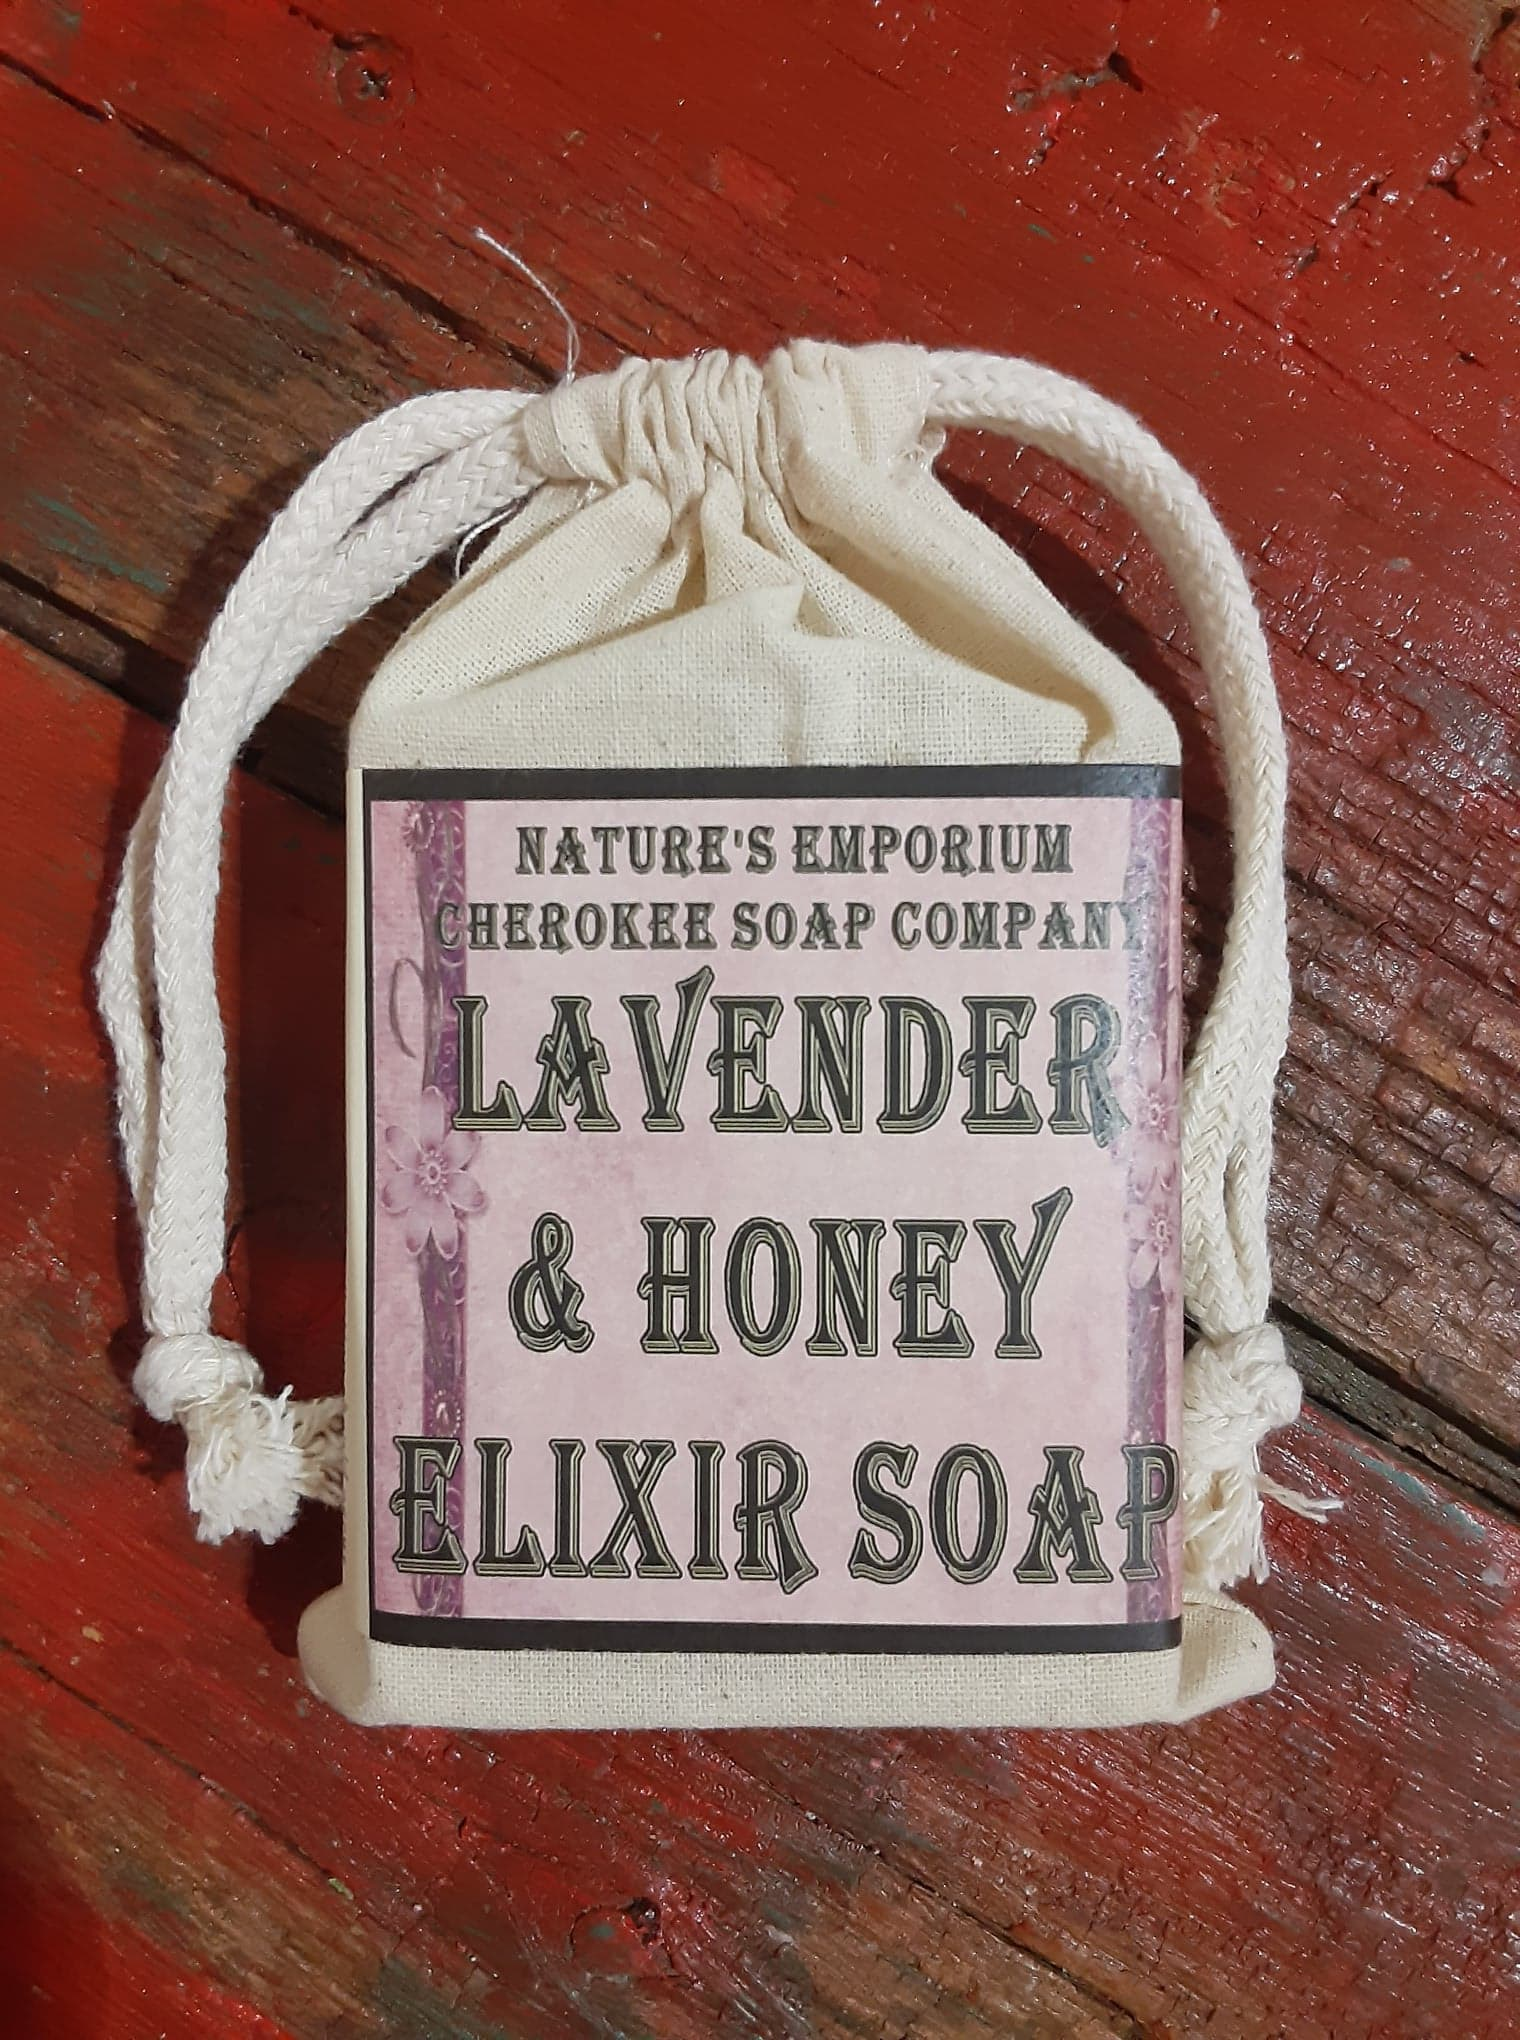 Lavender Honey Elixir Soap